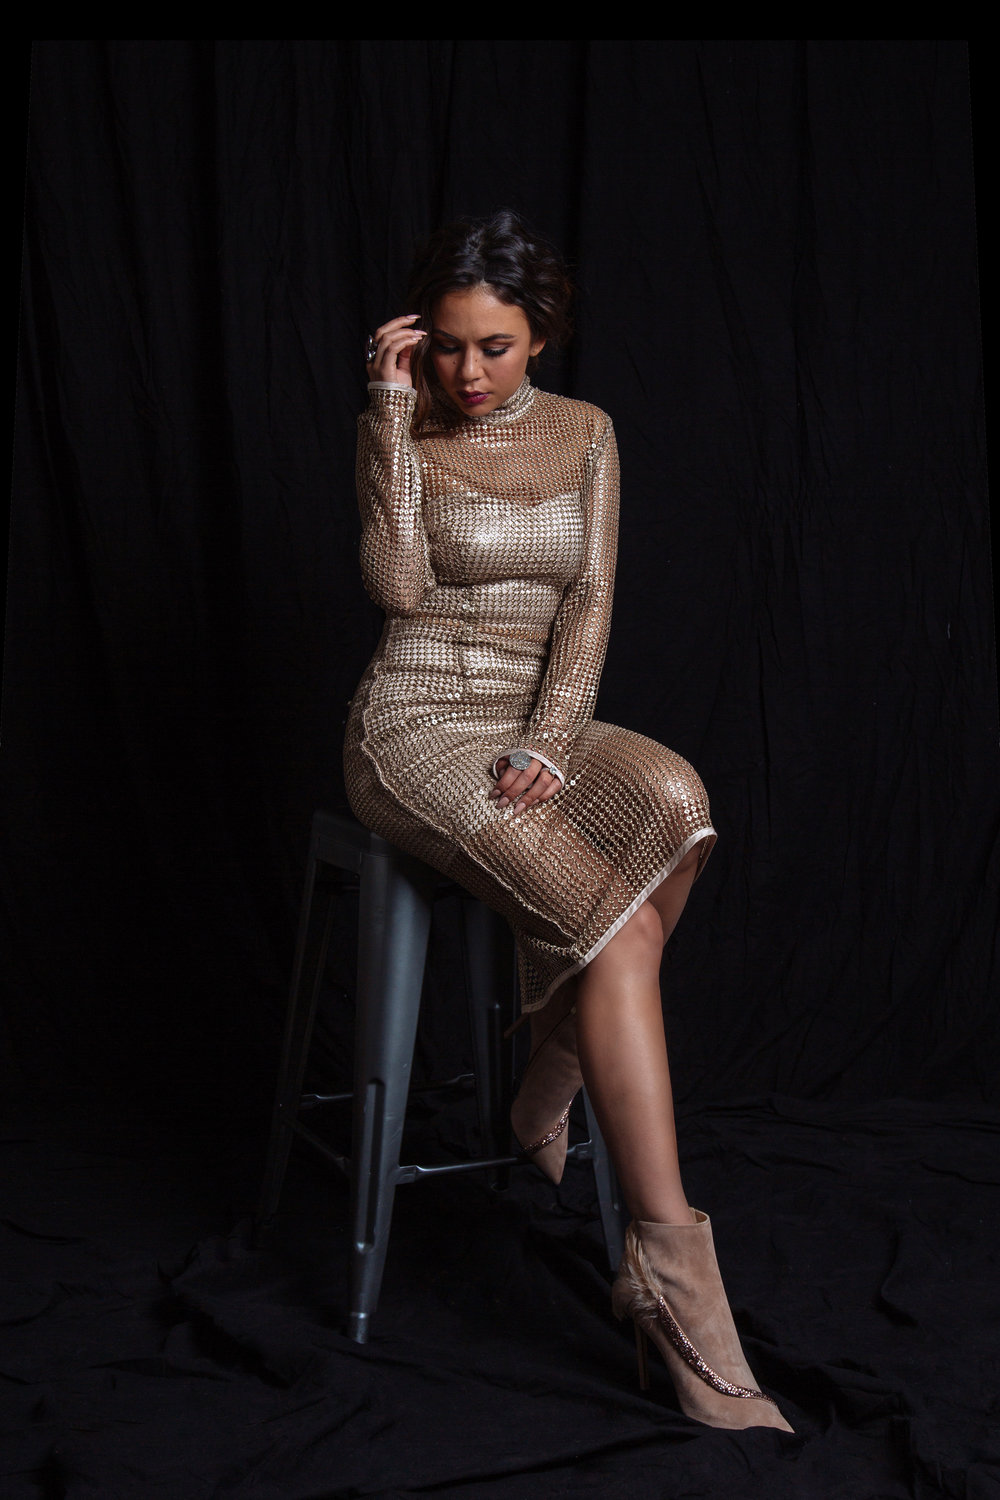 lucamagazine janelparrish golddress.jpg